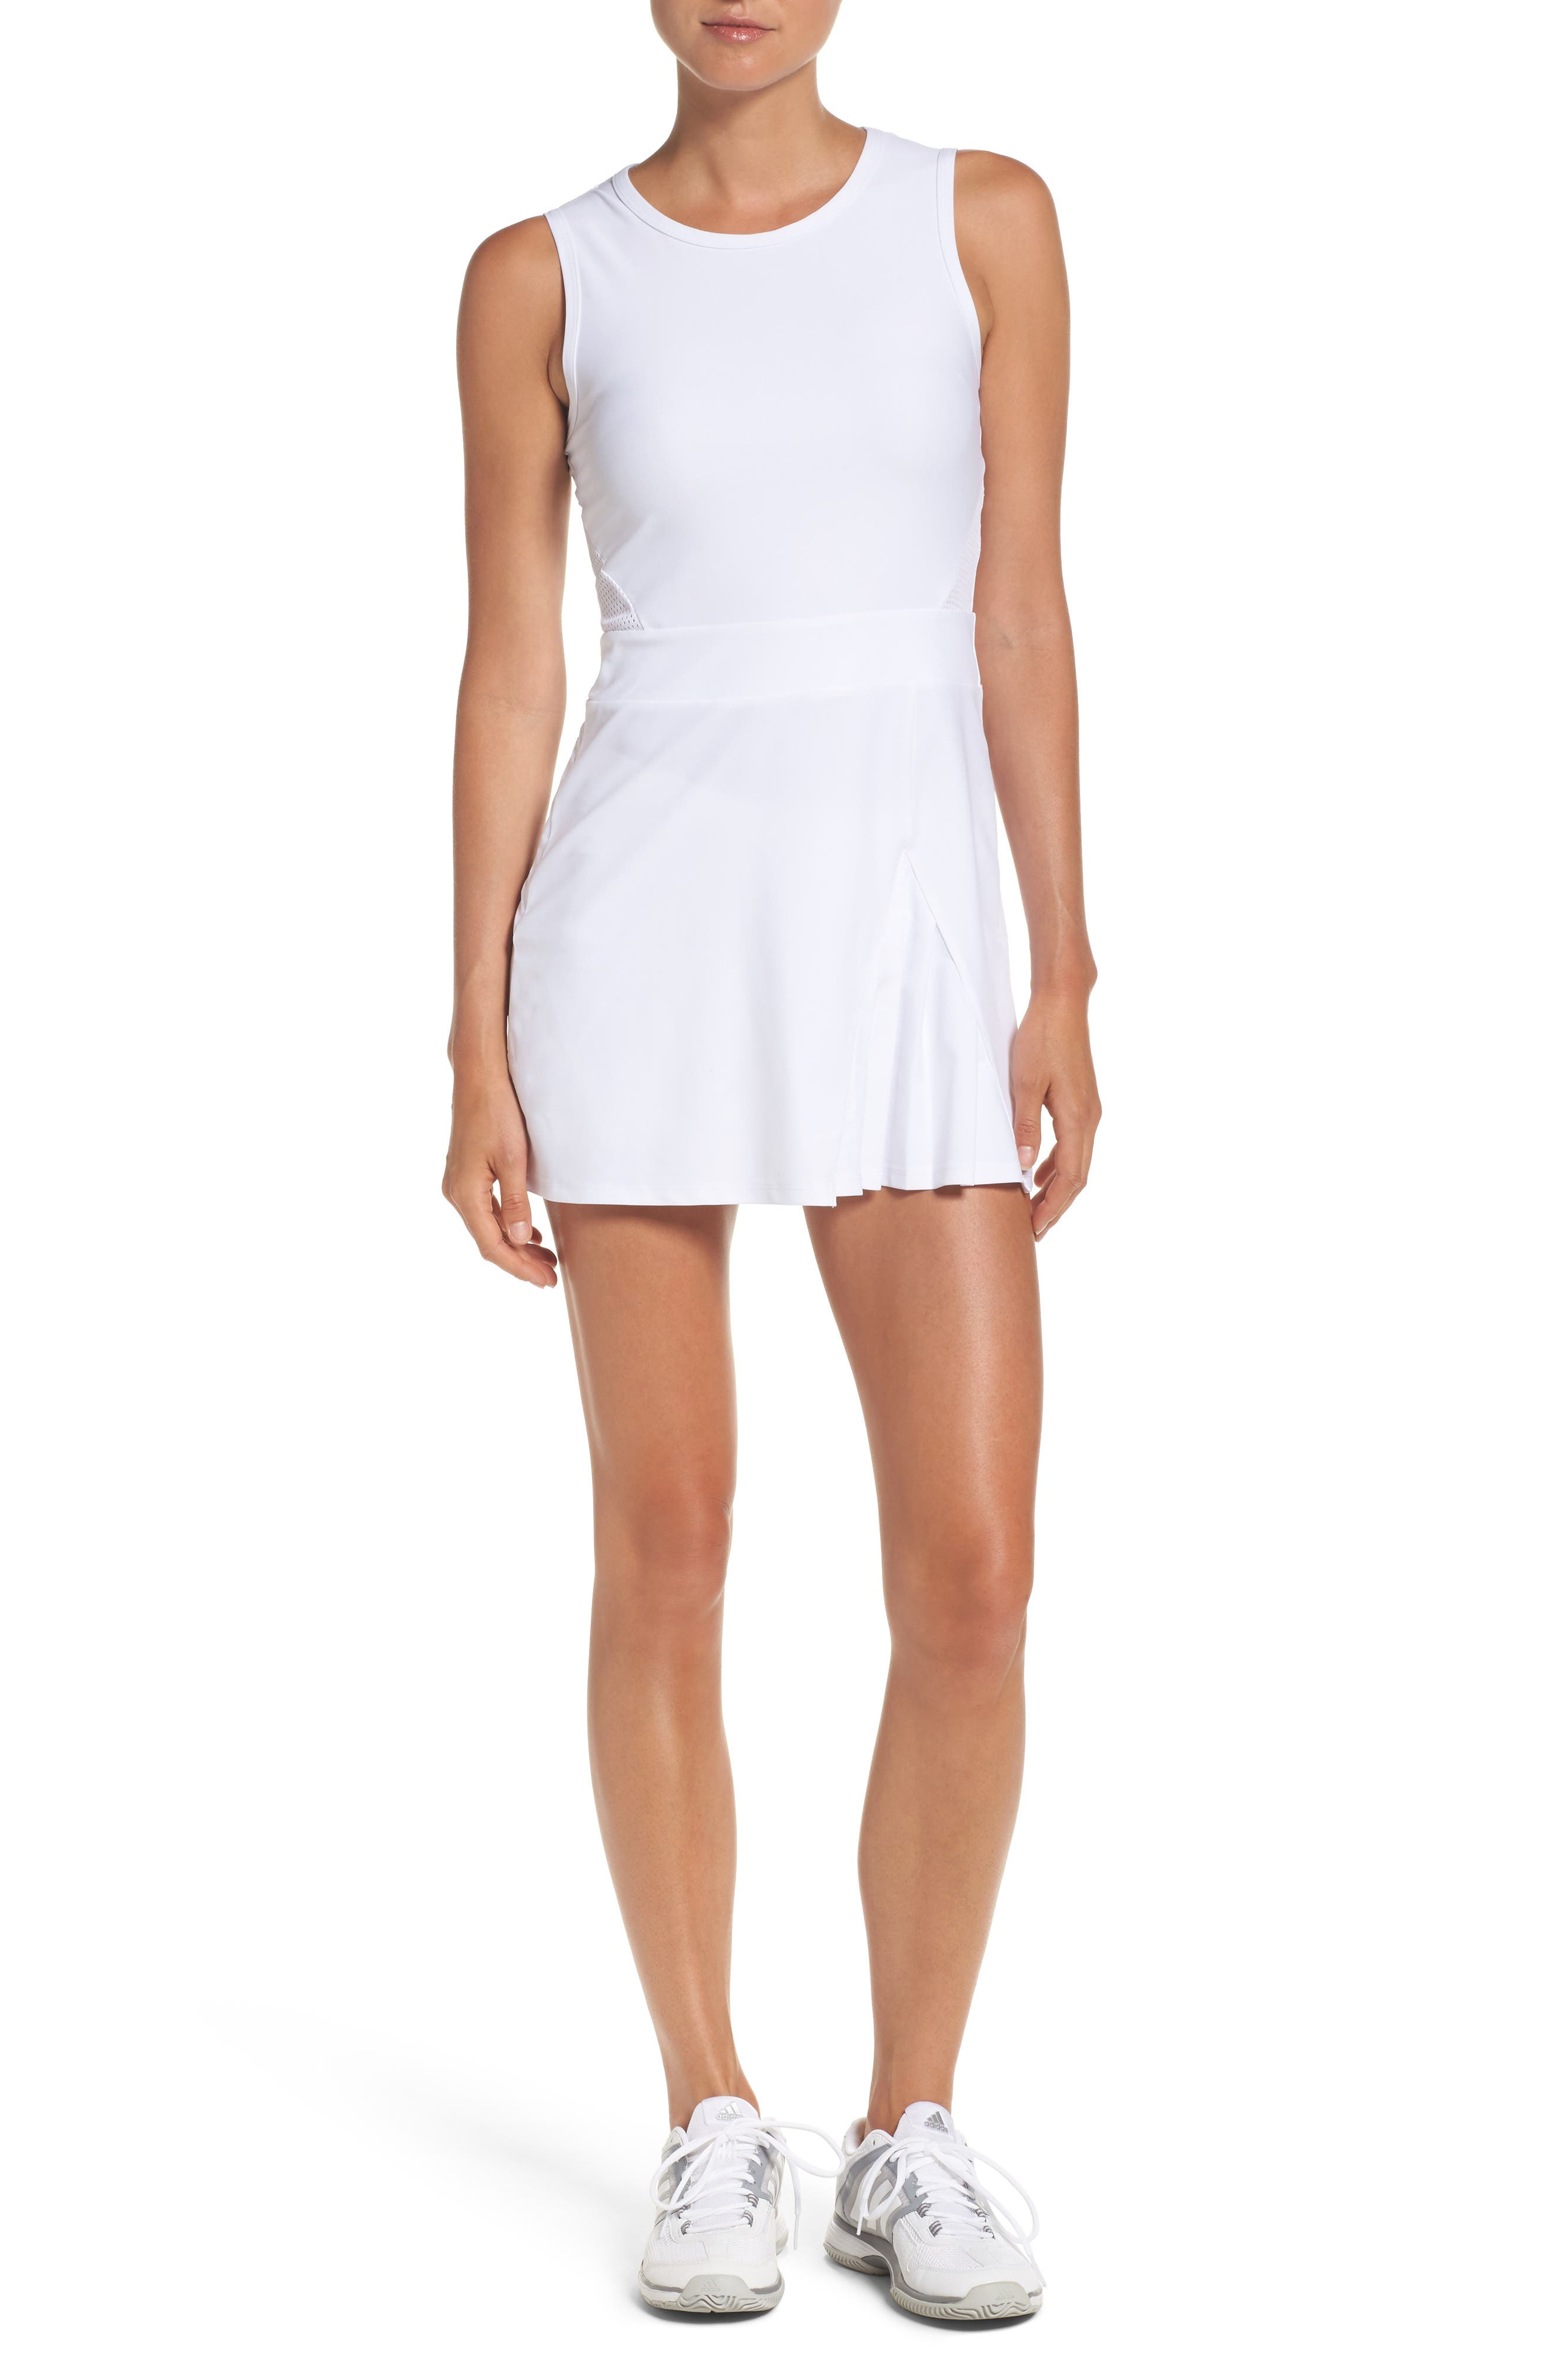 Alternate Image 1 Selected - BoomBoom Athletica Tennis Dress & Shorts